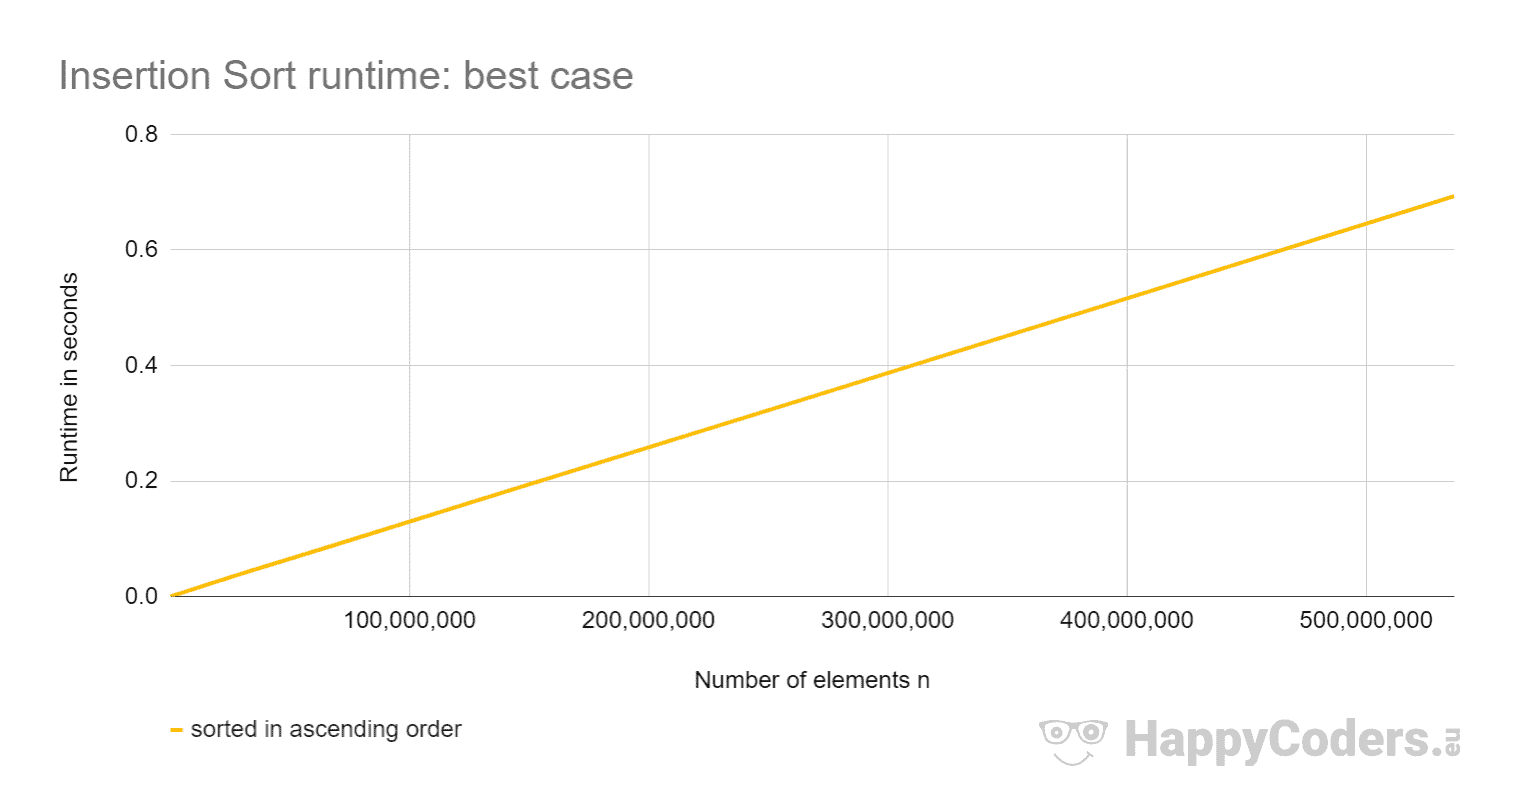 Insertion Sort runtime: best case